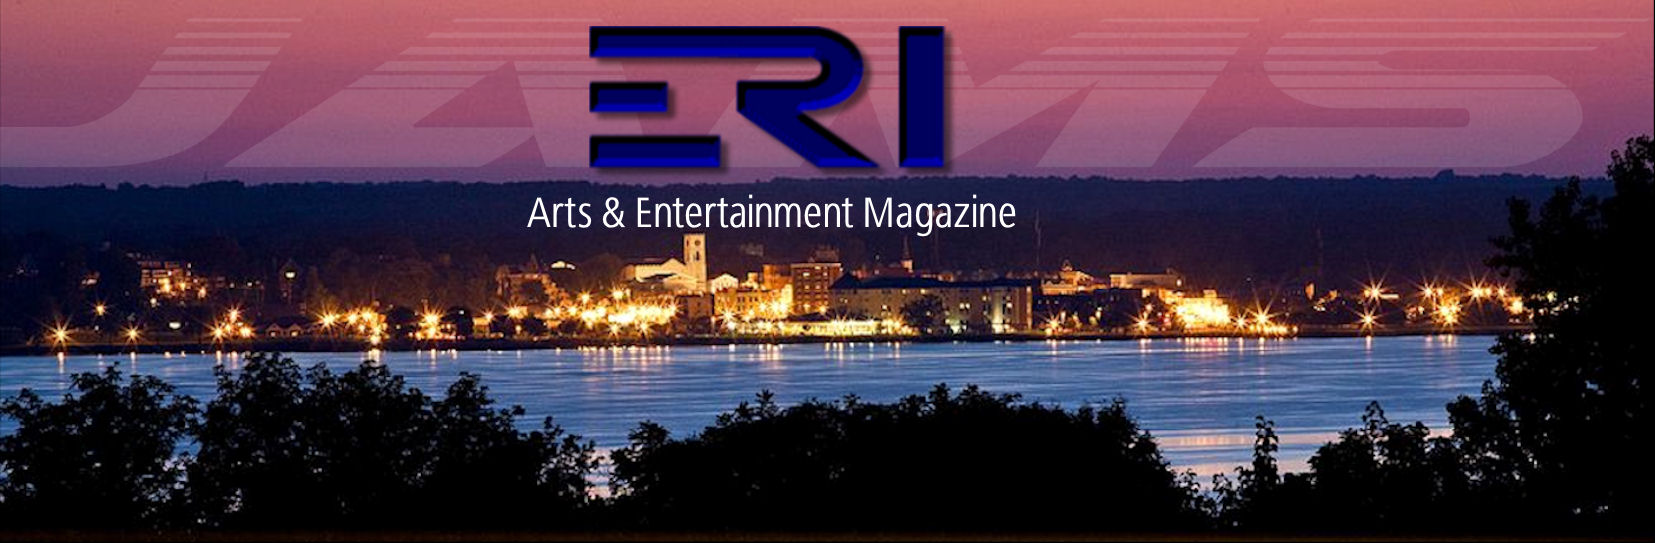 Presenting, promoting and preserving the artistic culture of our city along with the works of independent filmmakers, writers, artists and musicians in the Erie area.